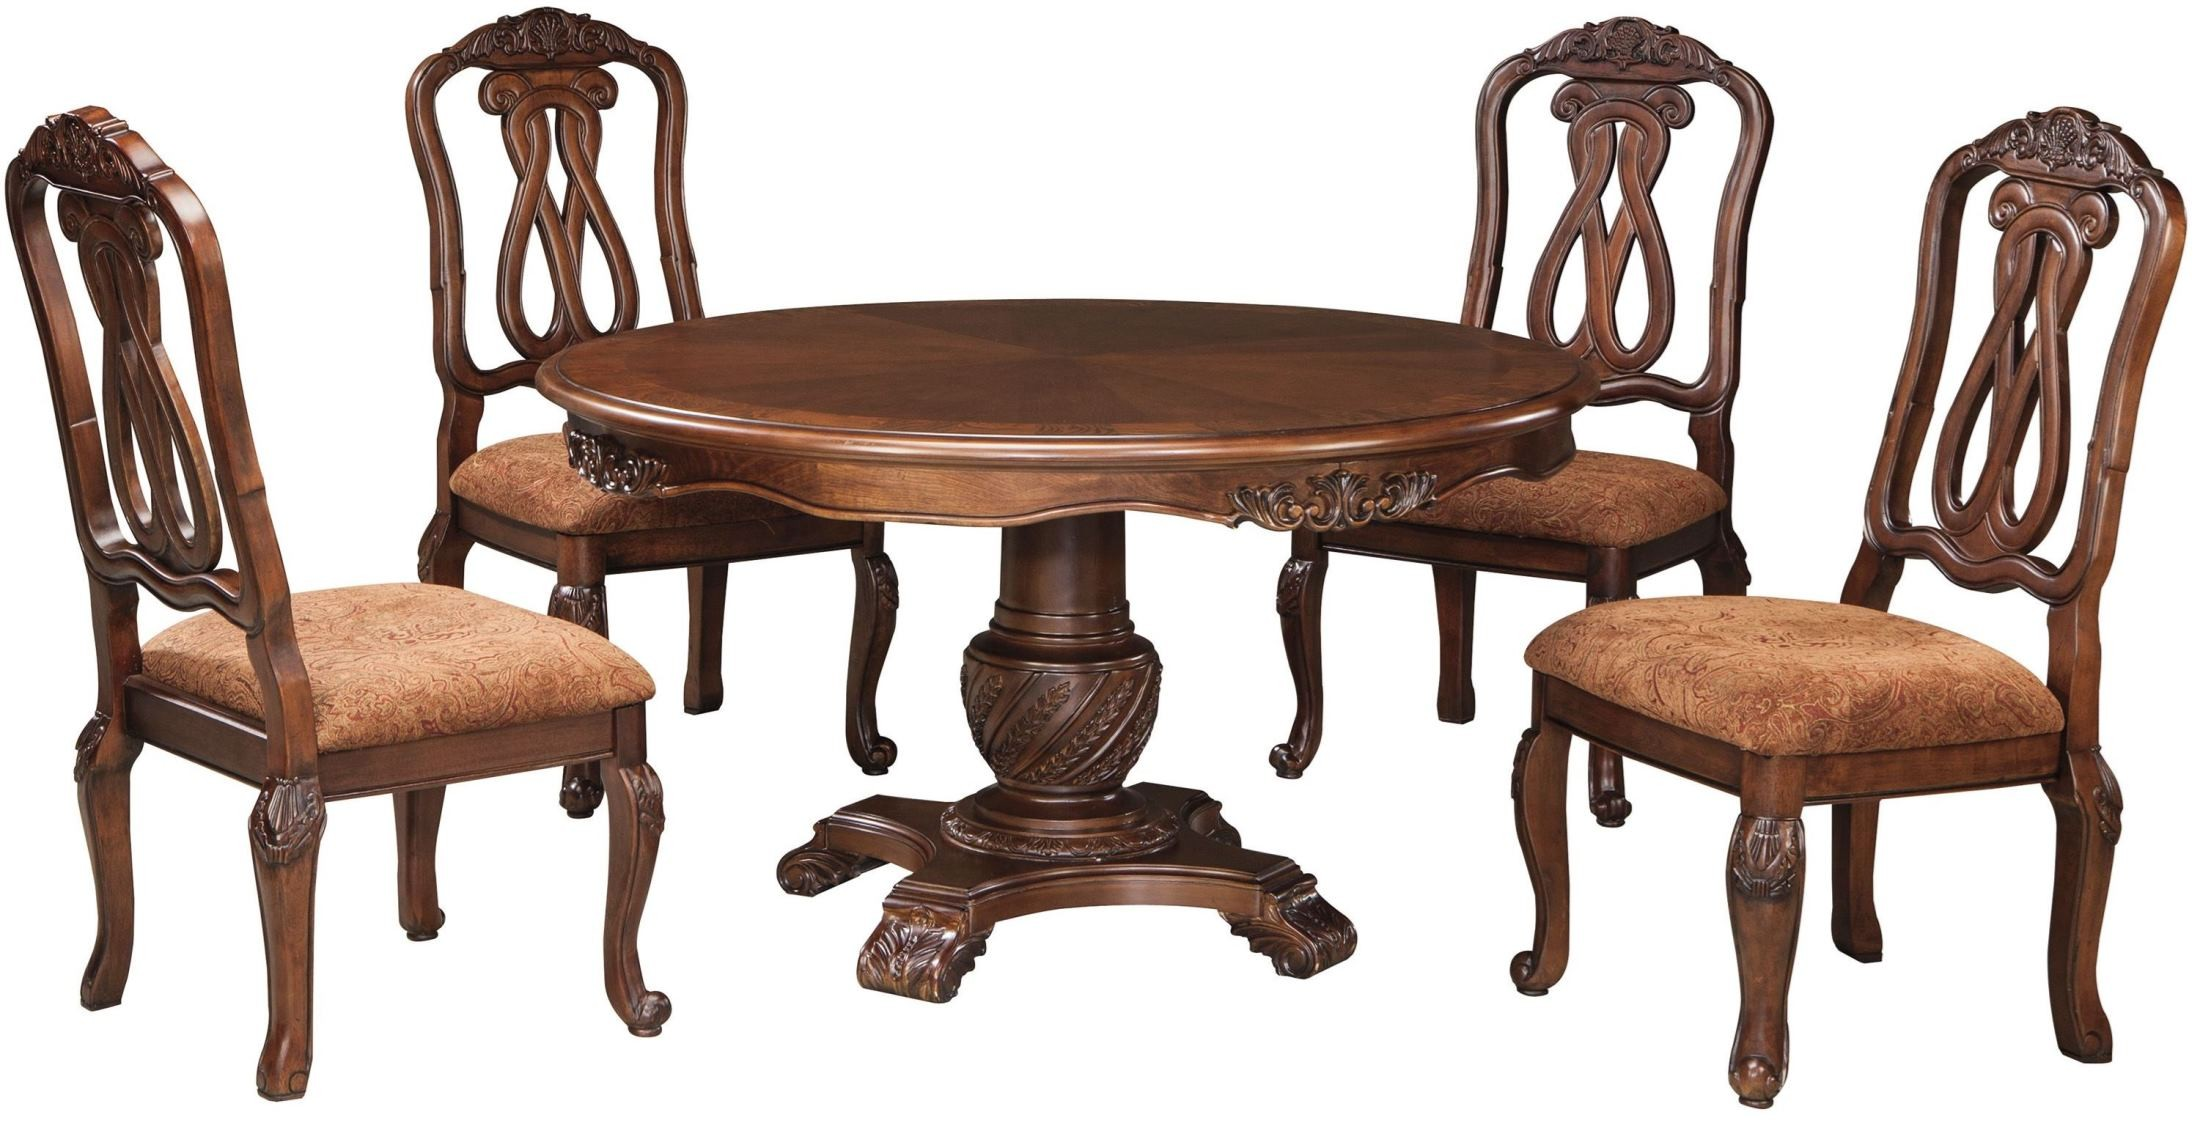 Round Dining Table And Chairs North Shore Round Pedestal Dining Room Set From Ashley